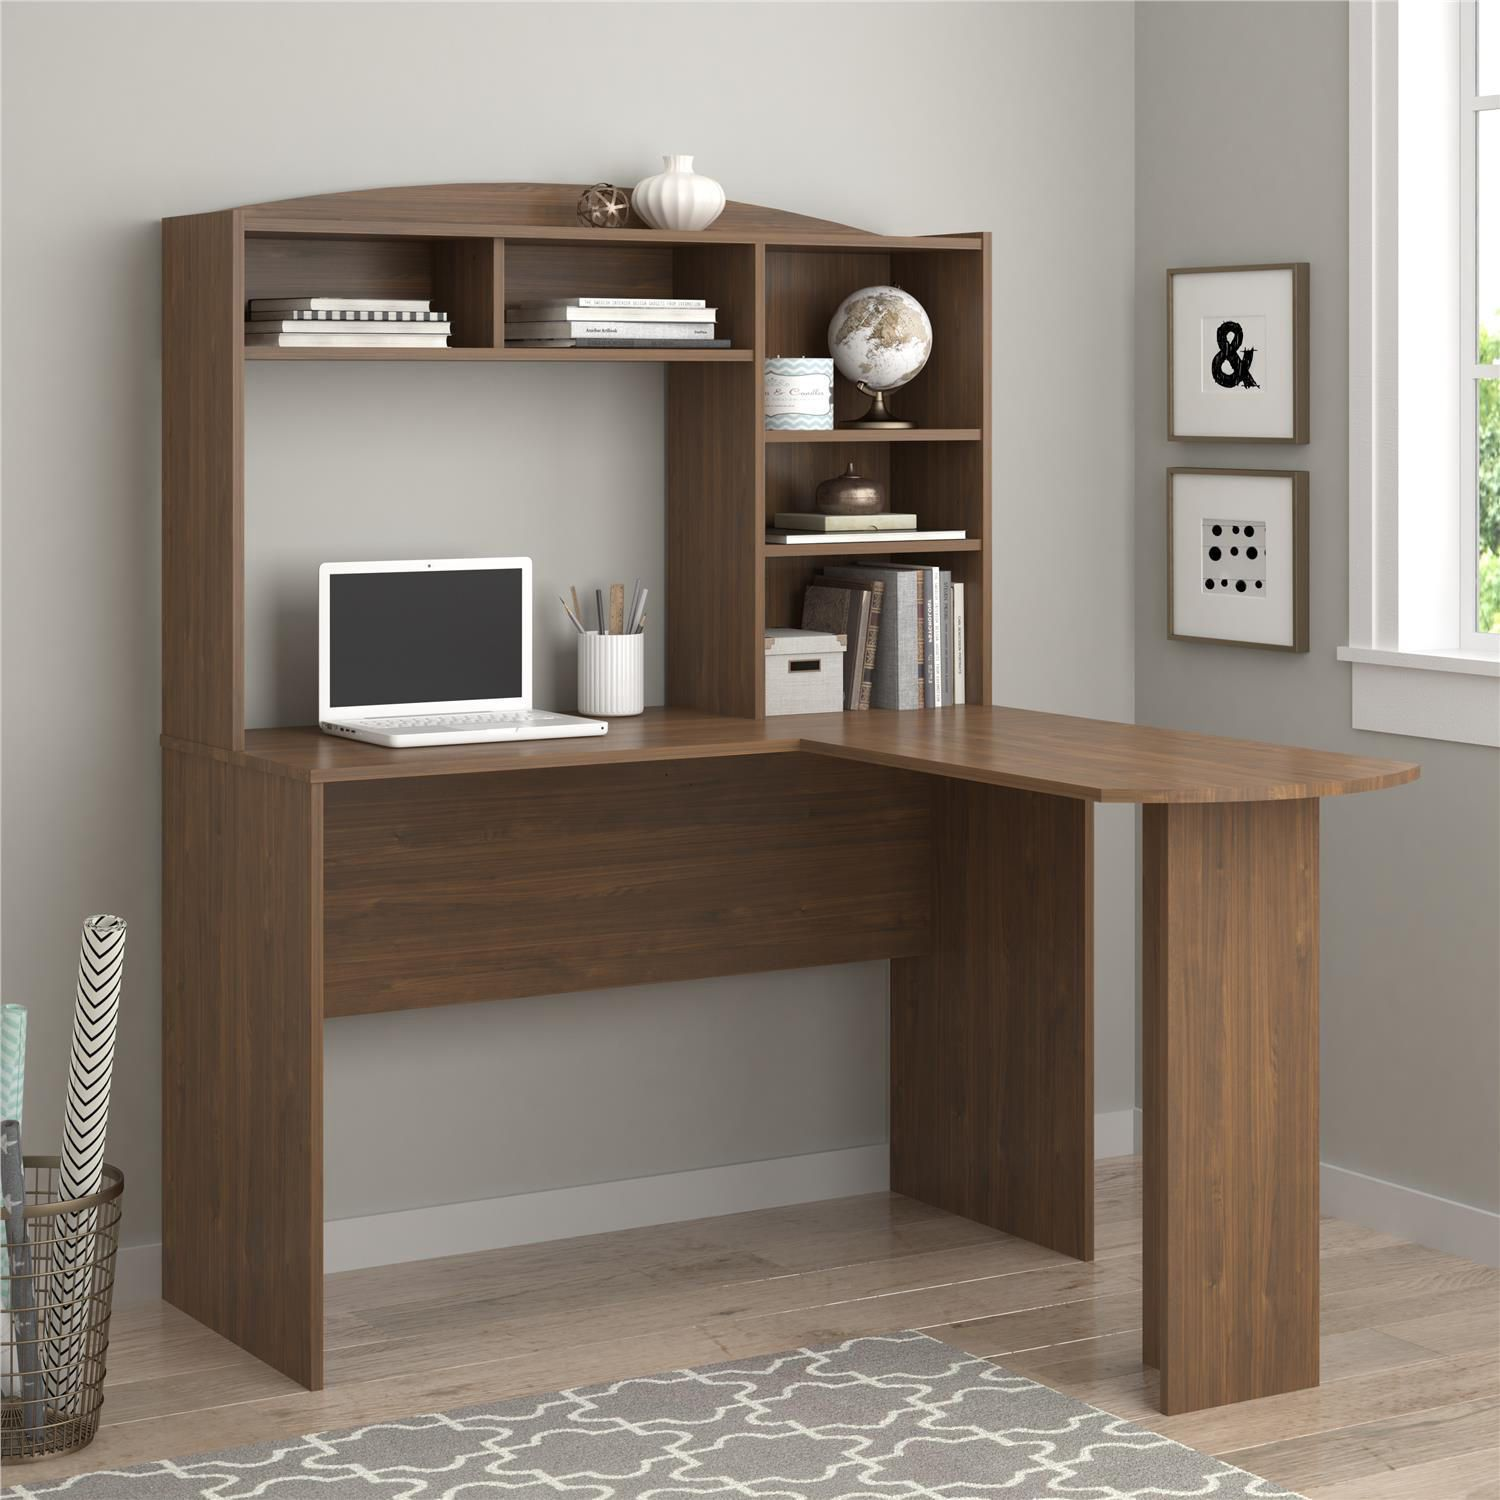 somerset with cross shape bush inspirations popular intended desks l maple office for in to hutch decorations computer great shaped pertaining wood desk home